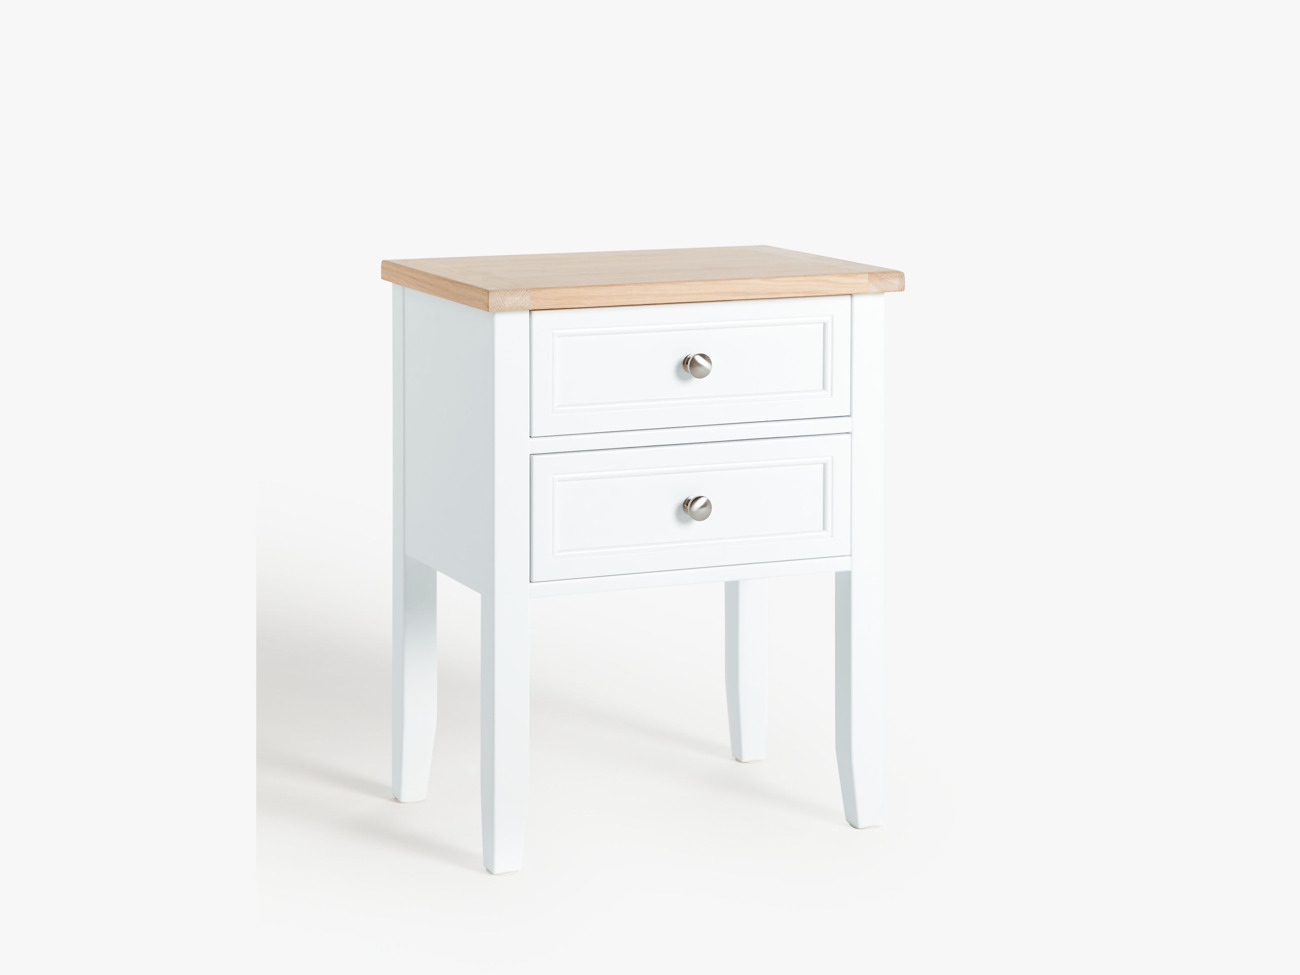 0 of the item images in large